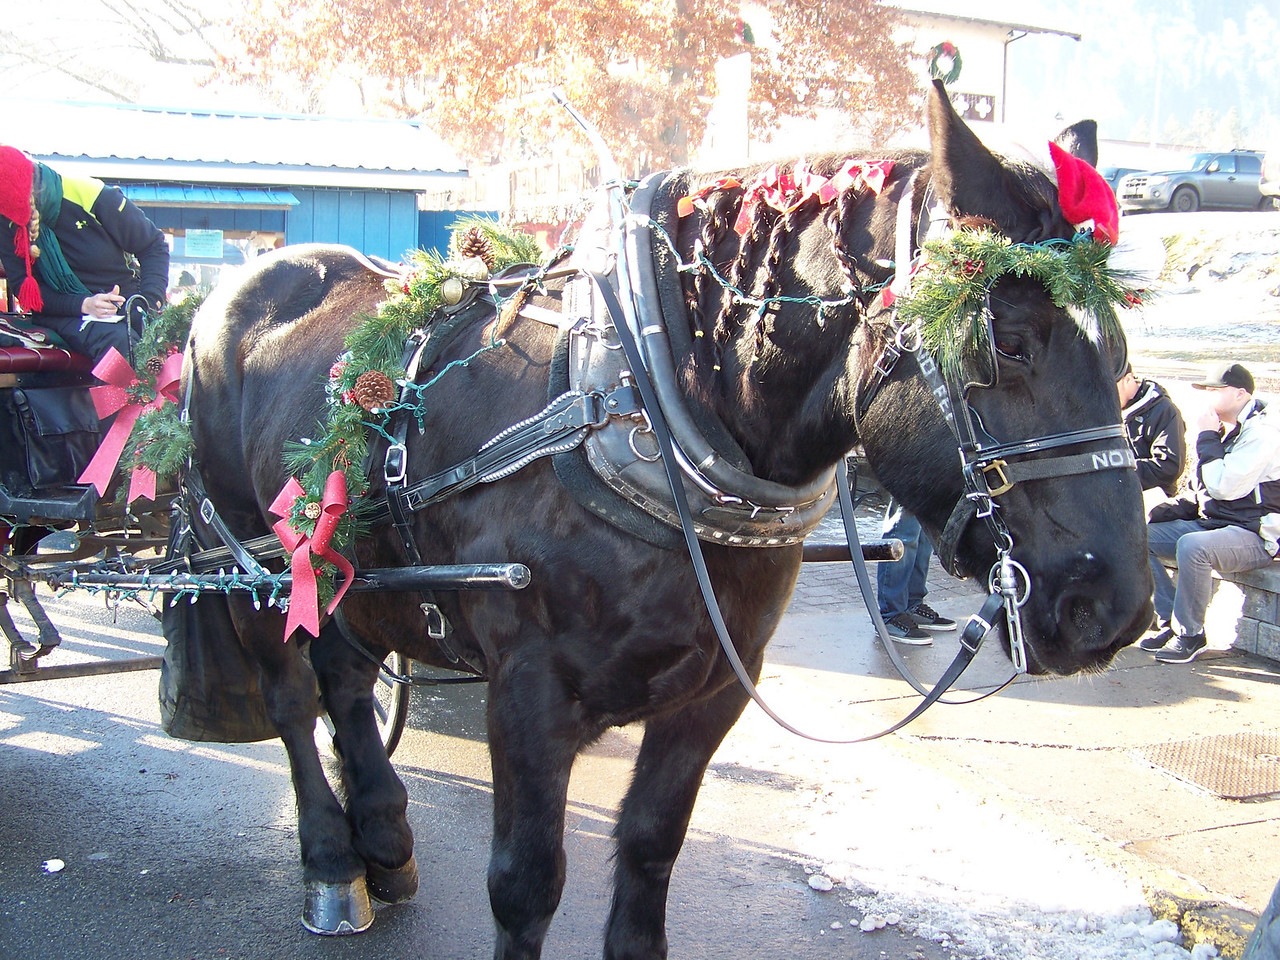 """The horse pulling the carriage got some Christmas decorations, too (plus a braided mane!). [Leavenworth, WA - December 2013 - <b><a target=""""_new"""" href=""""http://youtu.be/NqCqDCOY_tc"""">Watch my video here</a></b>]"""